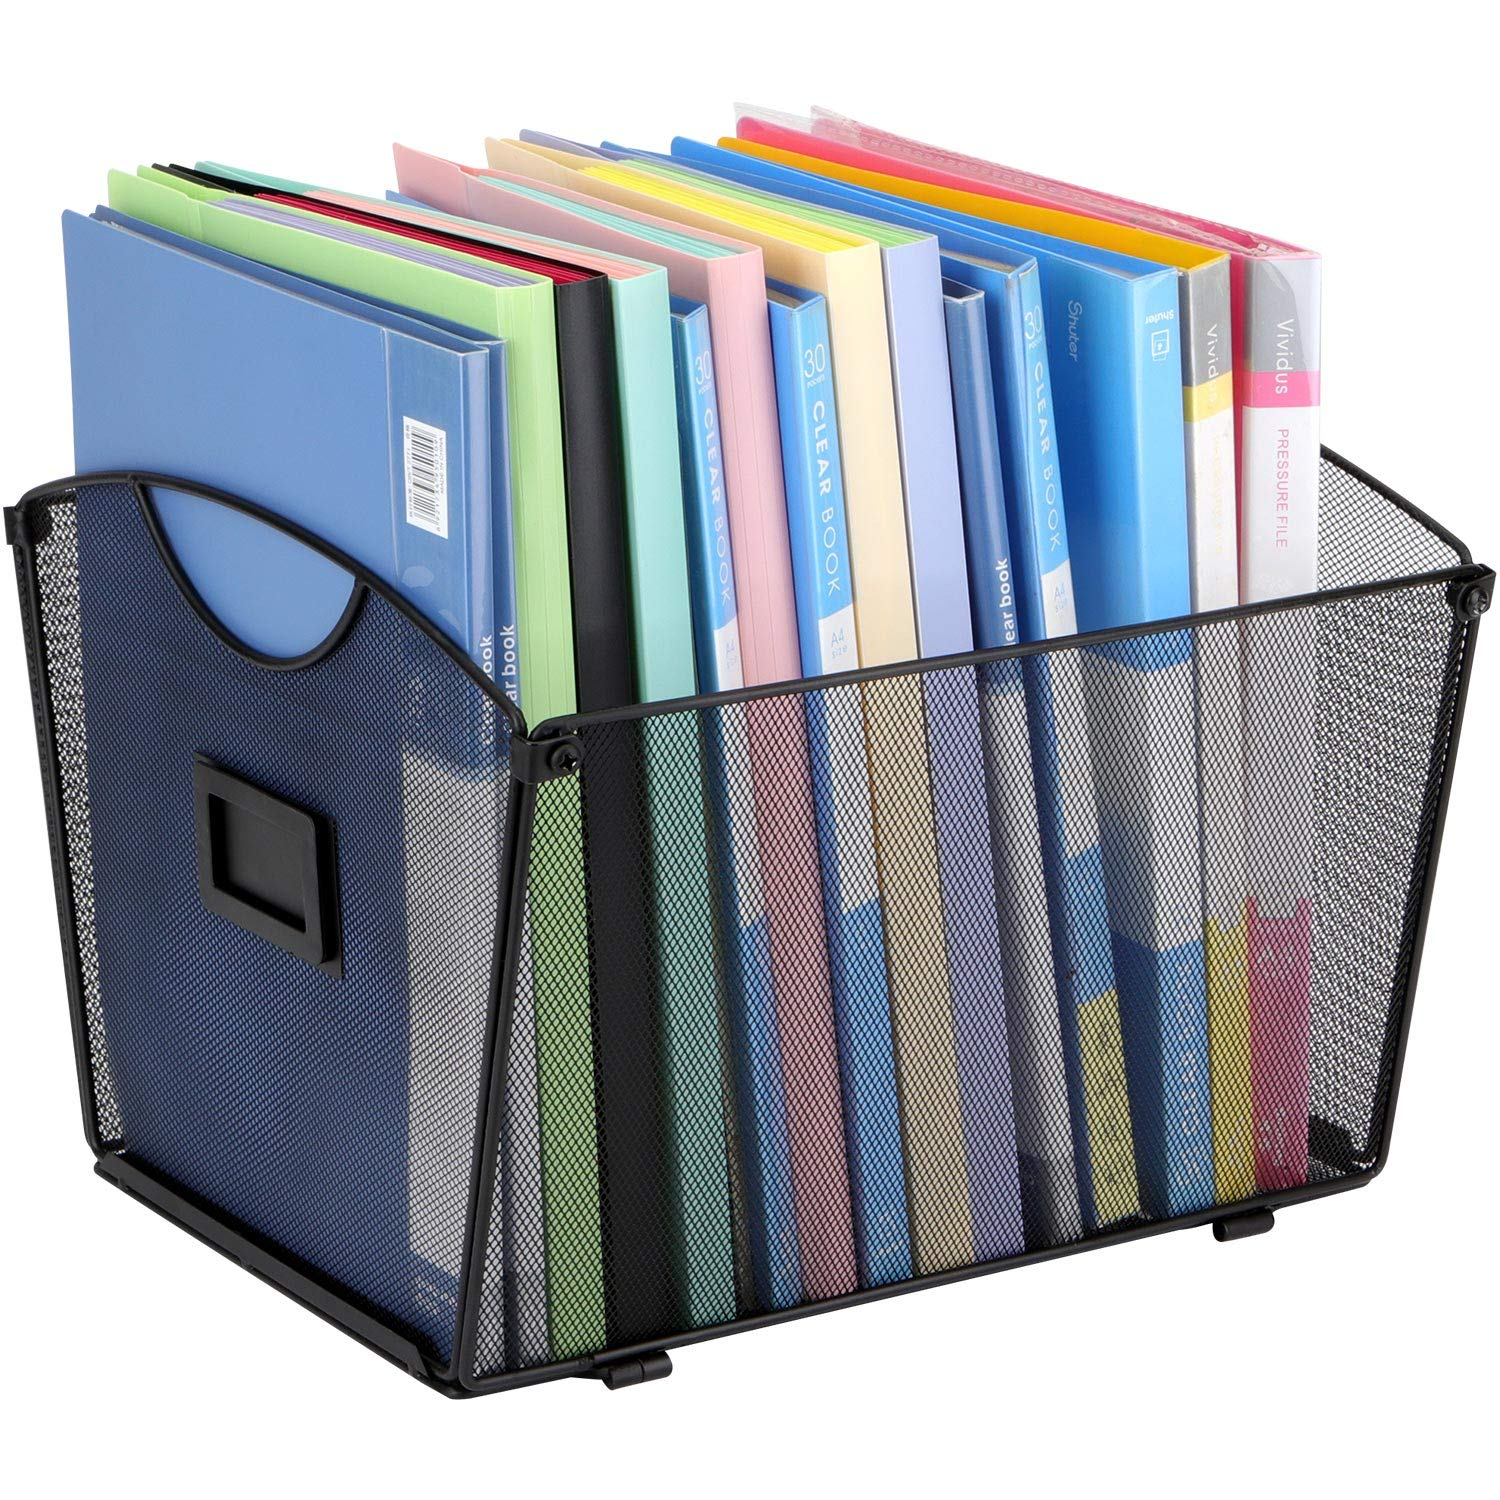 TOROTON Mesh Desktop Tub File Sorter Organizer, Letter Size, Storage File Crate for Documents, Magazines, Notebooks and Letter